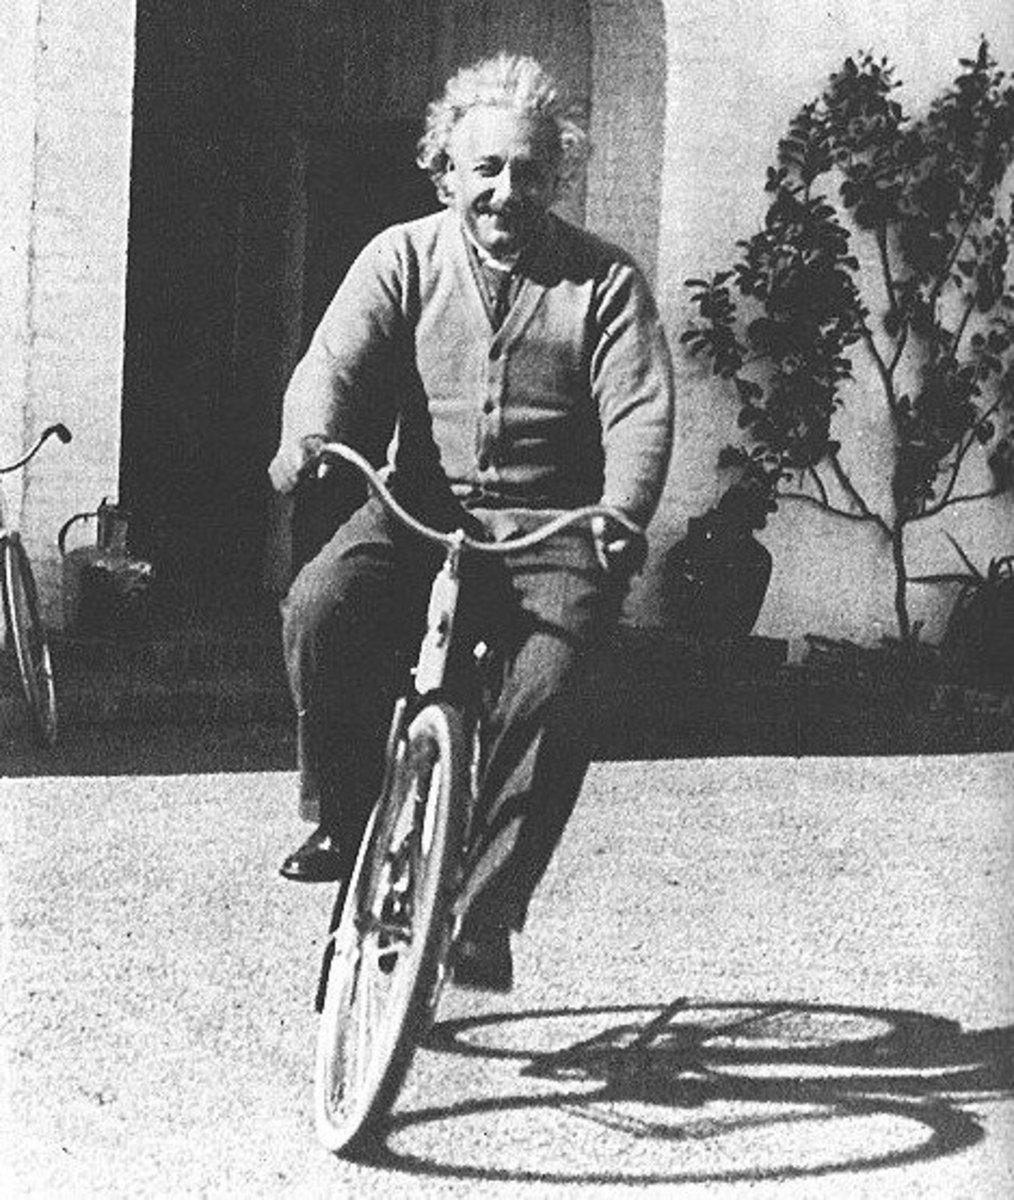 Life is like a bicycle, to keep your balance your must keep on moving. —A letter from Einstein to his son.